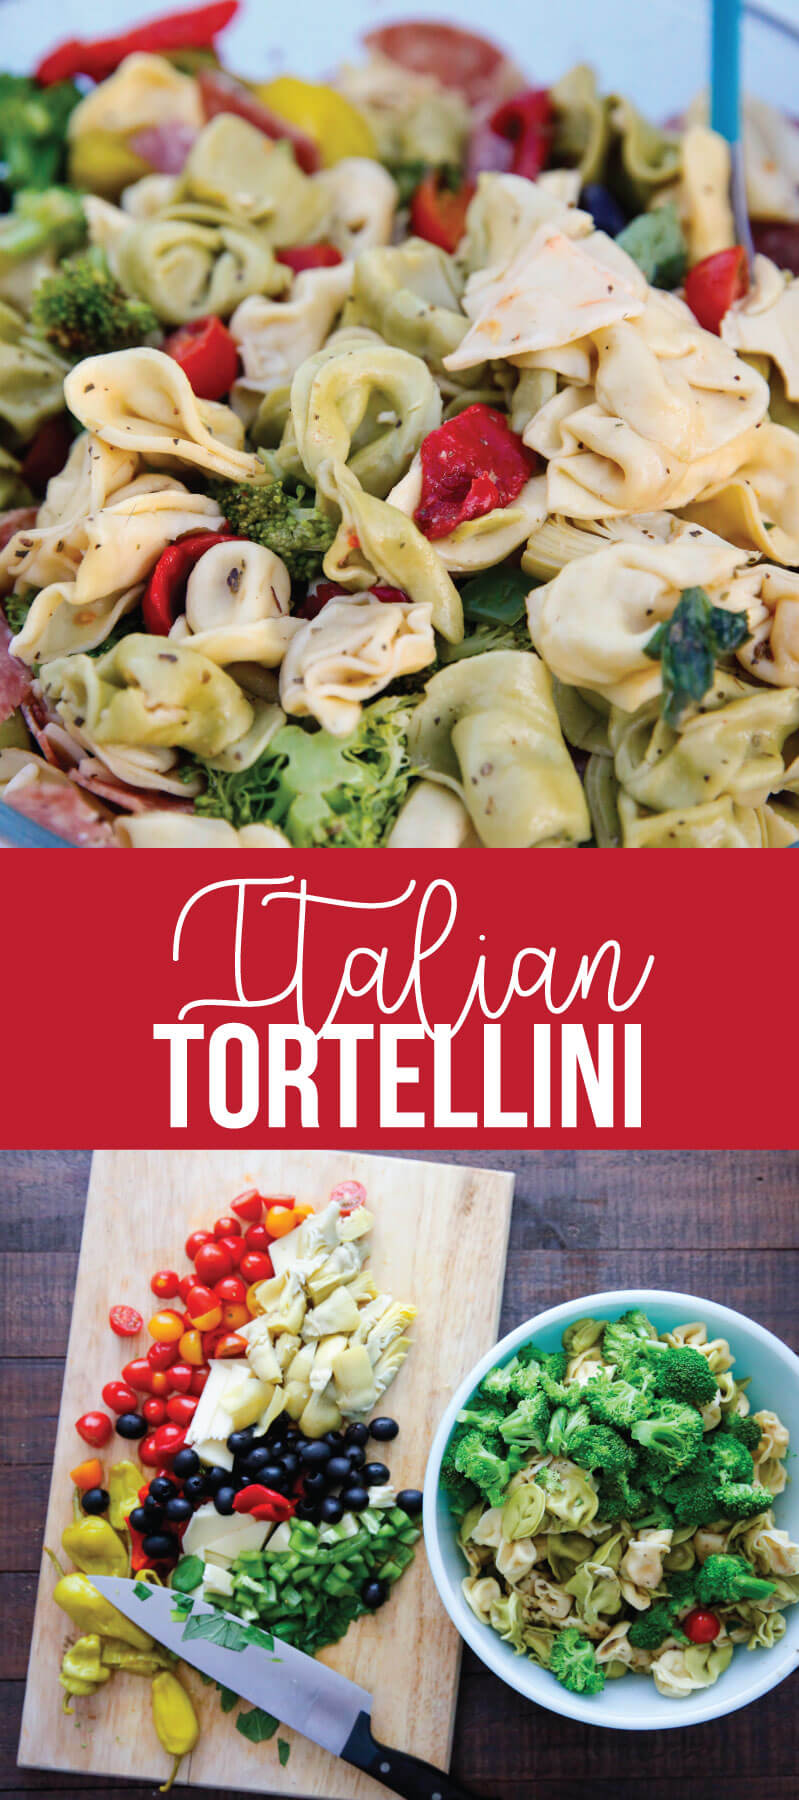 An awesome Italian salad with tortellini, vegetables meats and cheese. This Italian Tortellini Salad will be a huge hit wherever you take it! Perfect potluck dish. www.thirtyhandmadedays.com